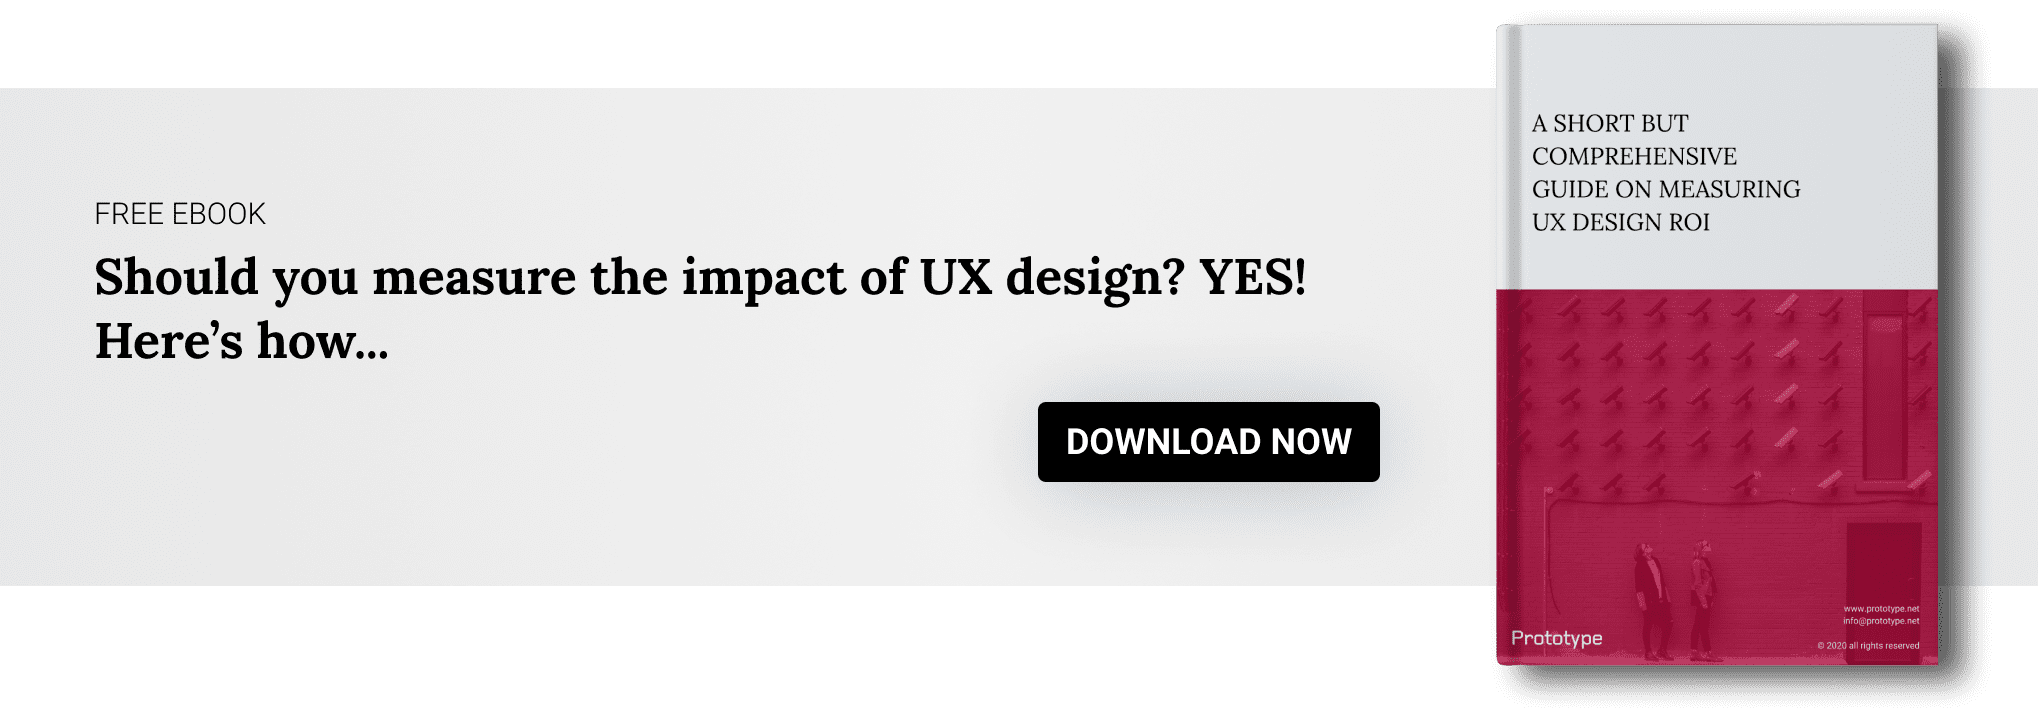 Shirt BUt Comprehensive Guide on Meauring UX Design ROI